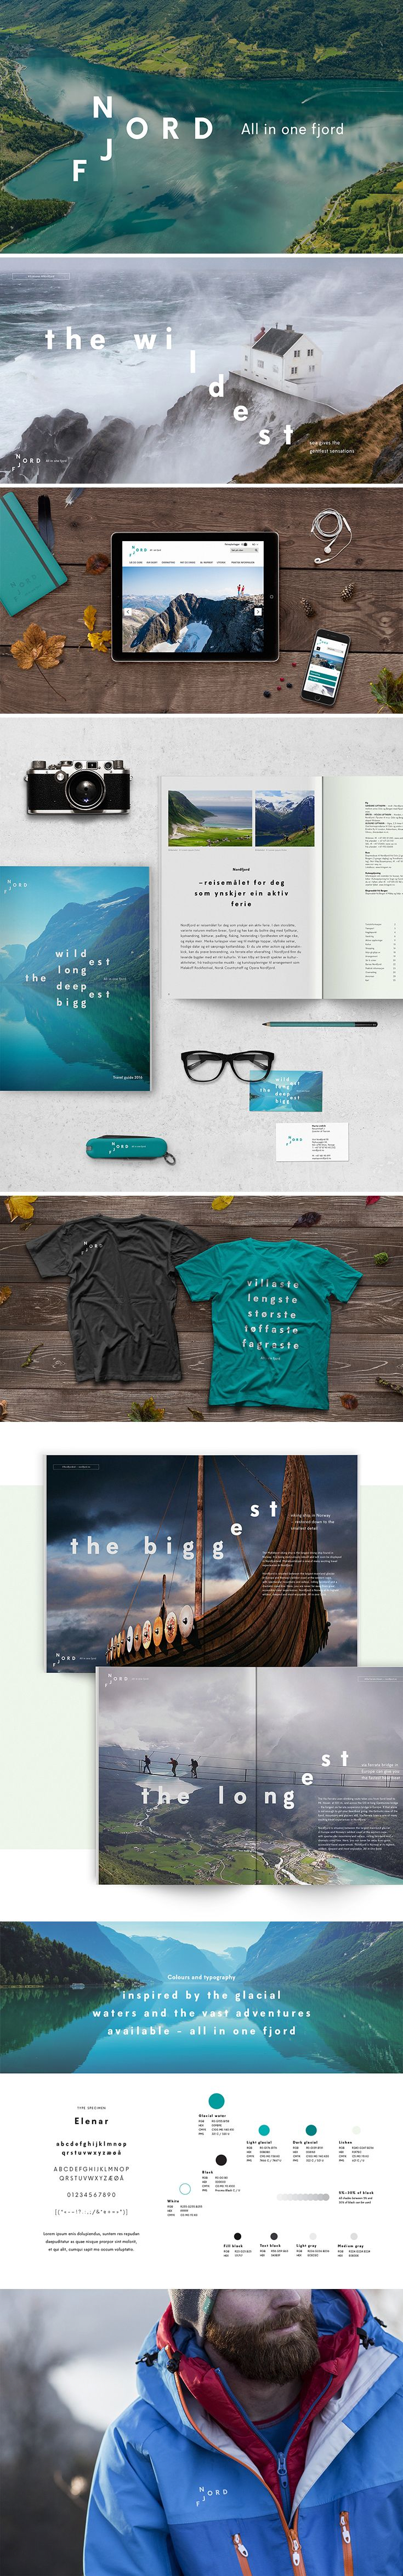 Visual identity for Visit Nordfjord, Norway | By Creuna